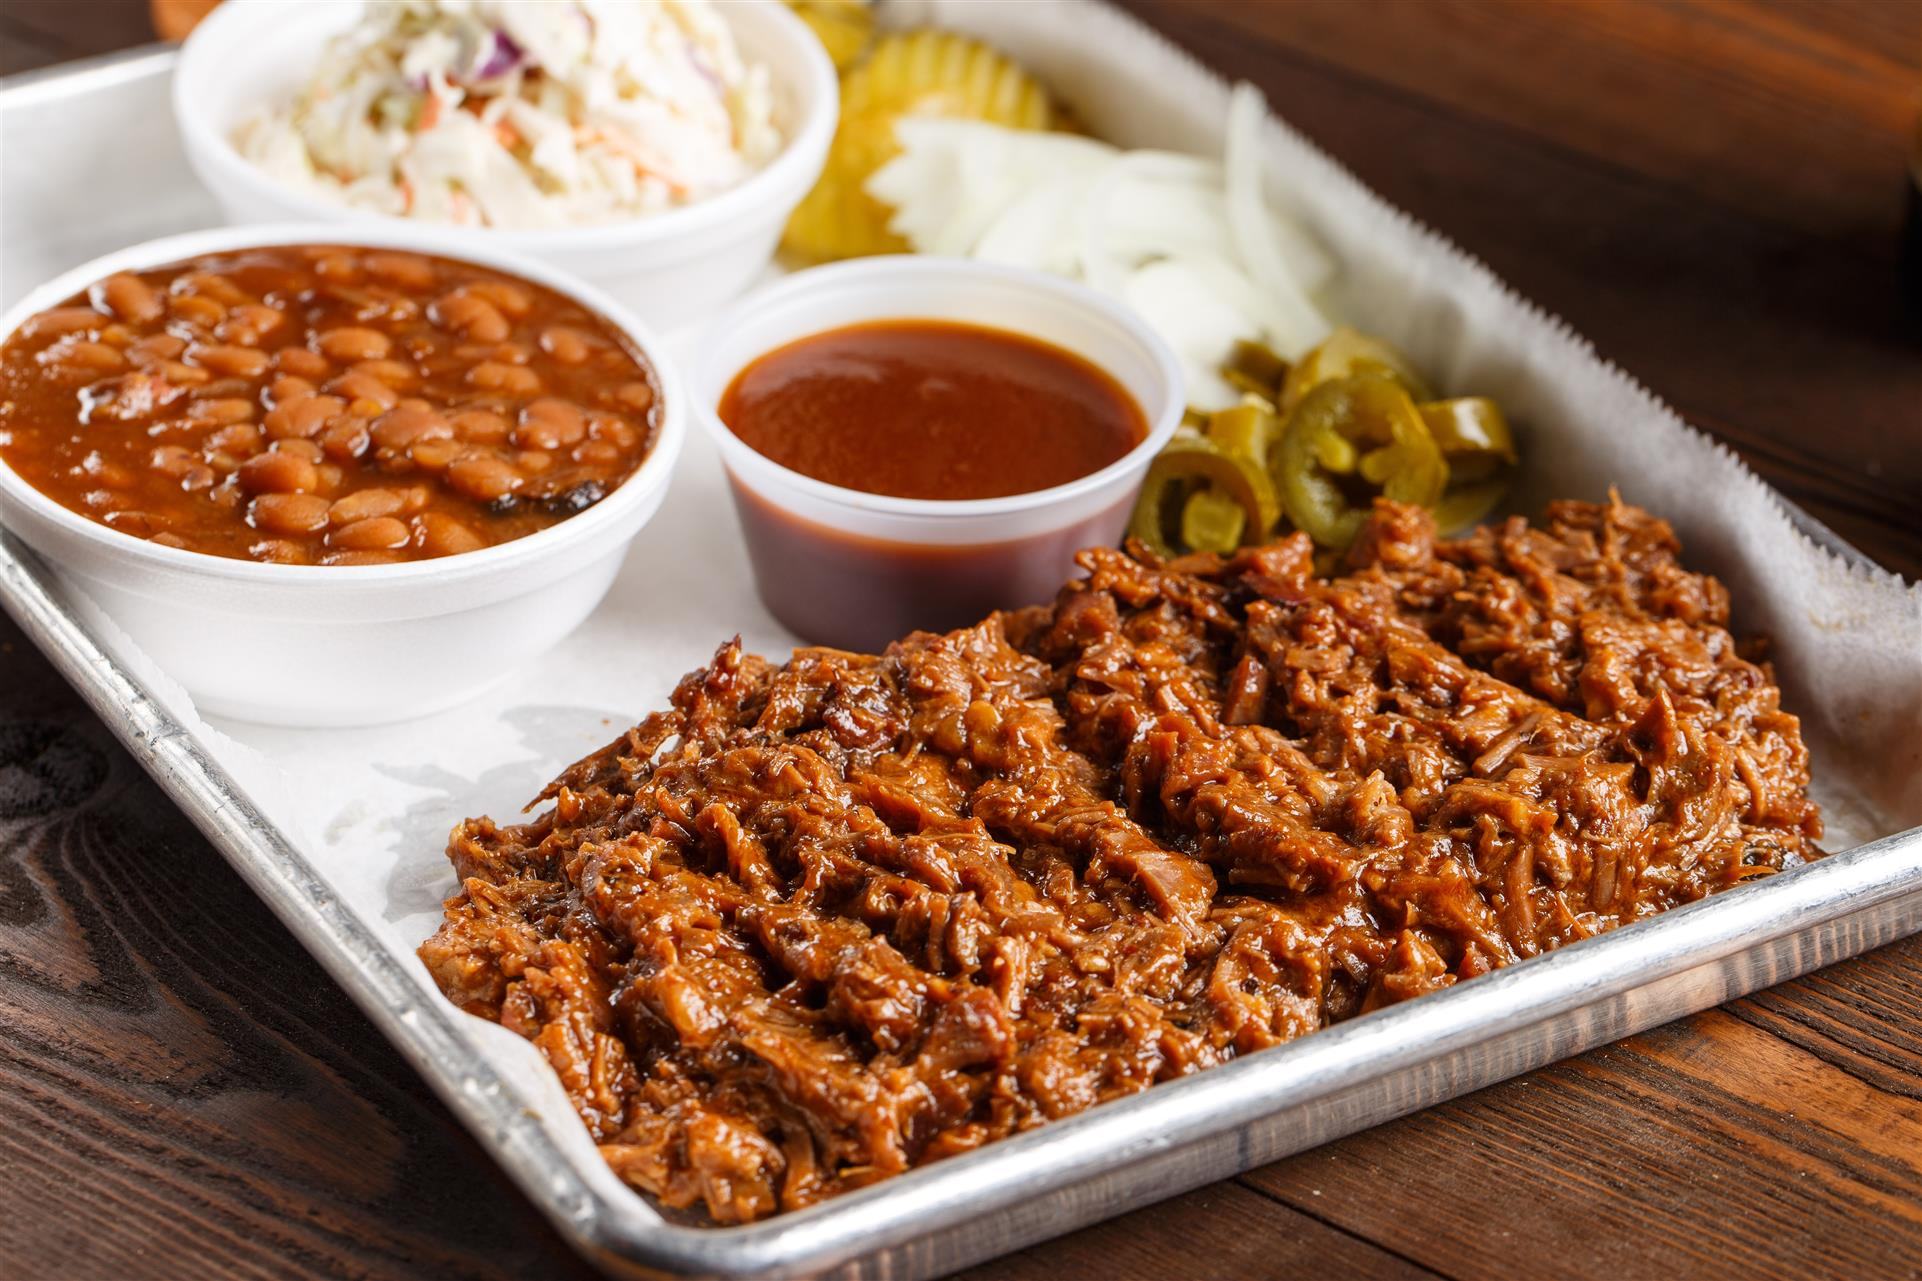 A tray of pulled pork with sides such as, coleslaw, baked beans, and BBQ sauce